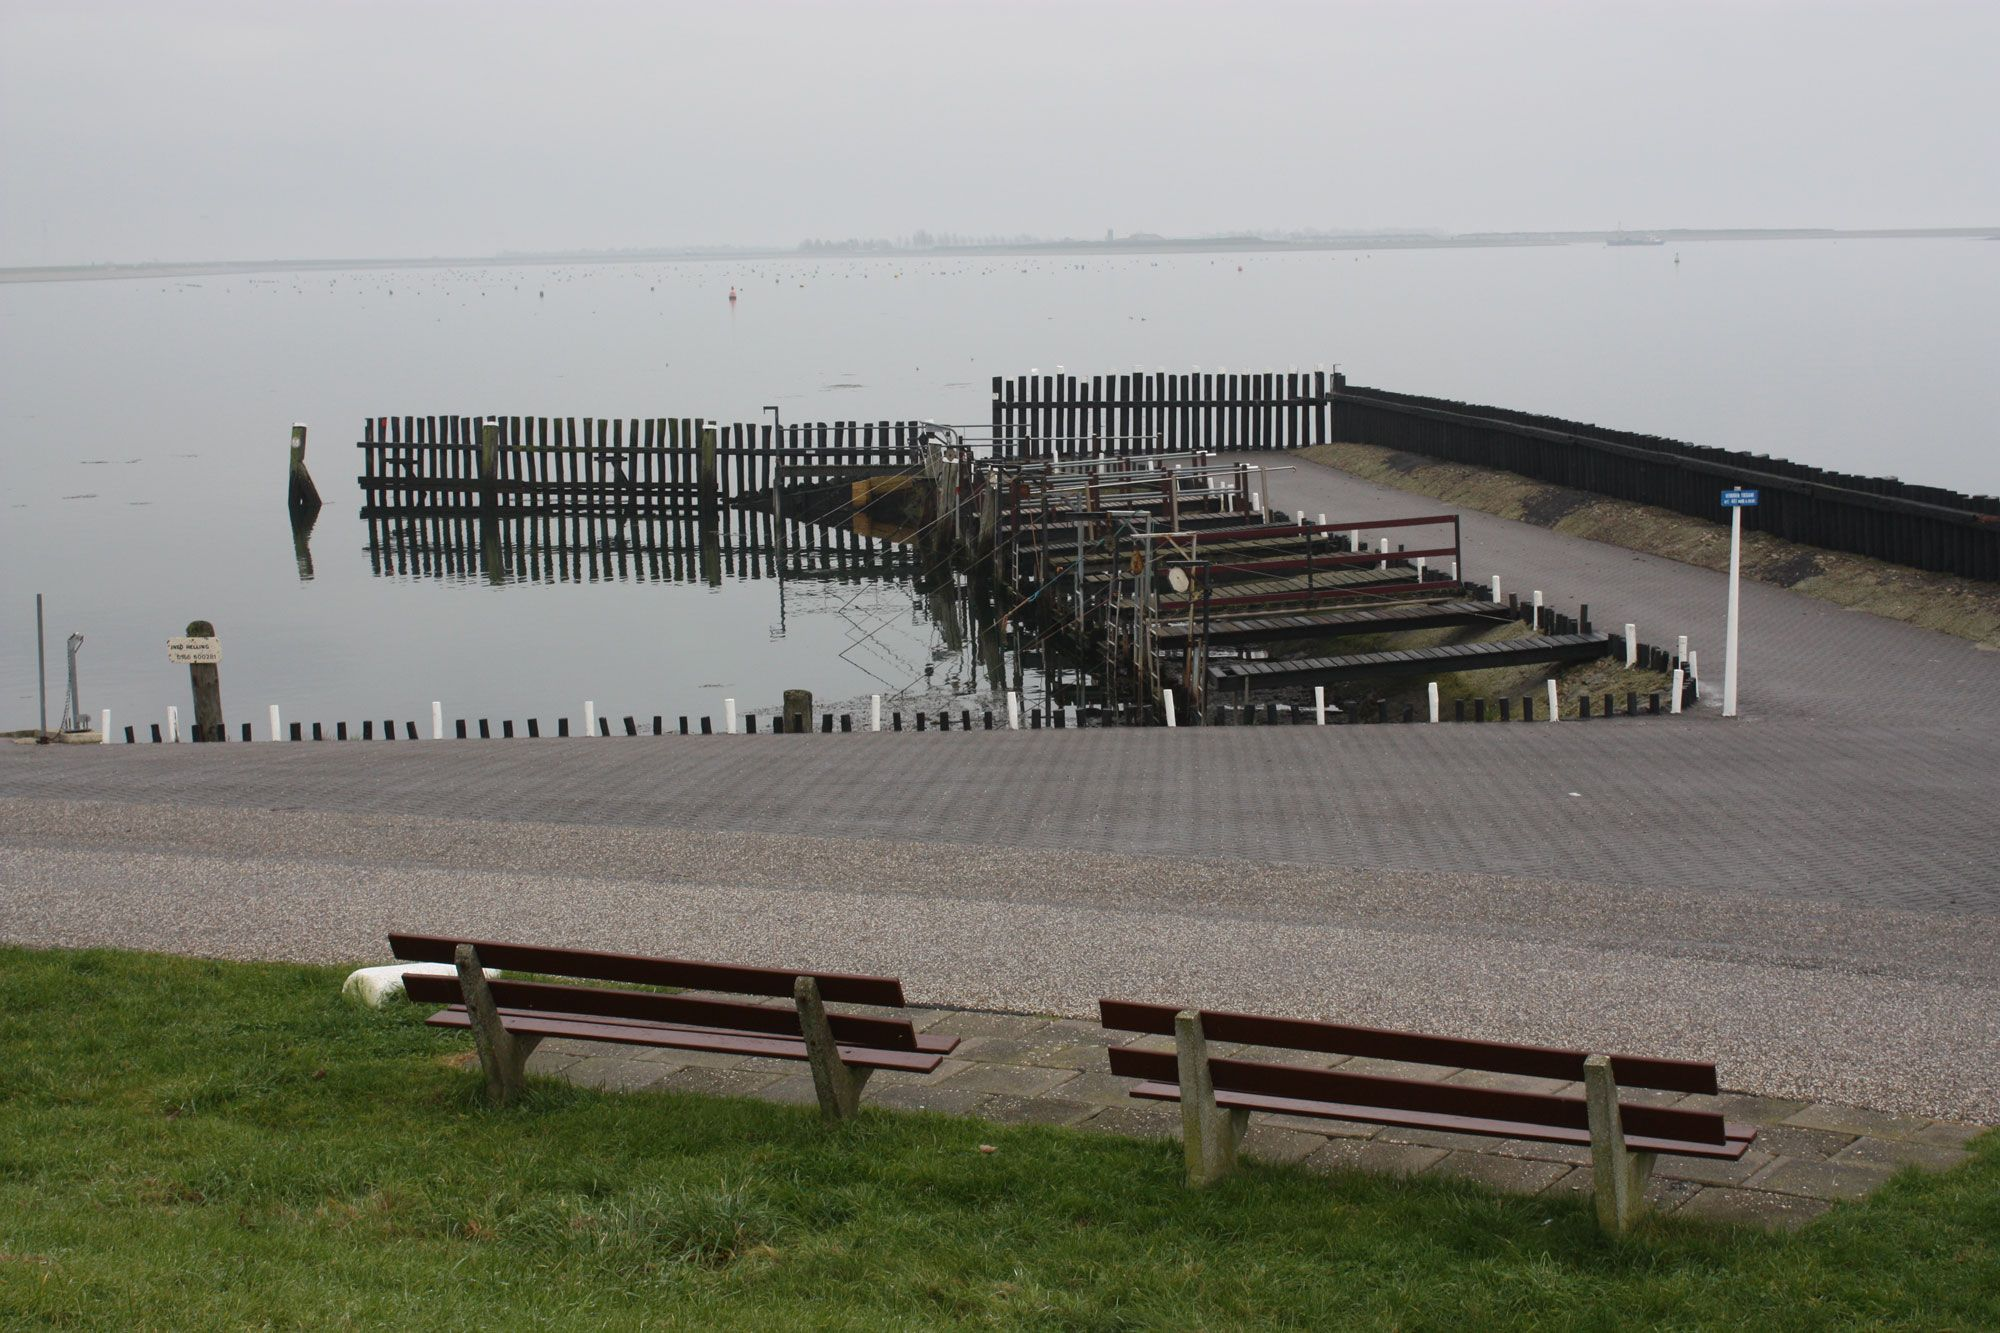 De haven van Strijenham in november 2011 (Beeldbank SCEZ)